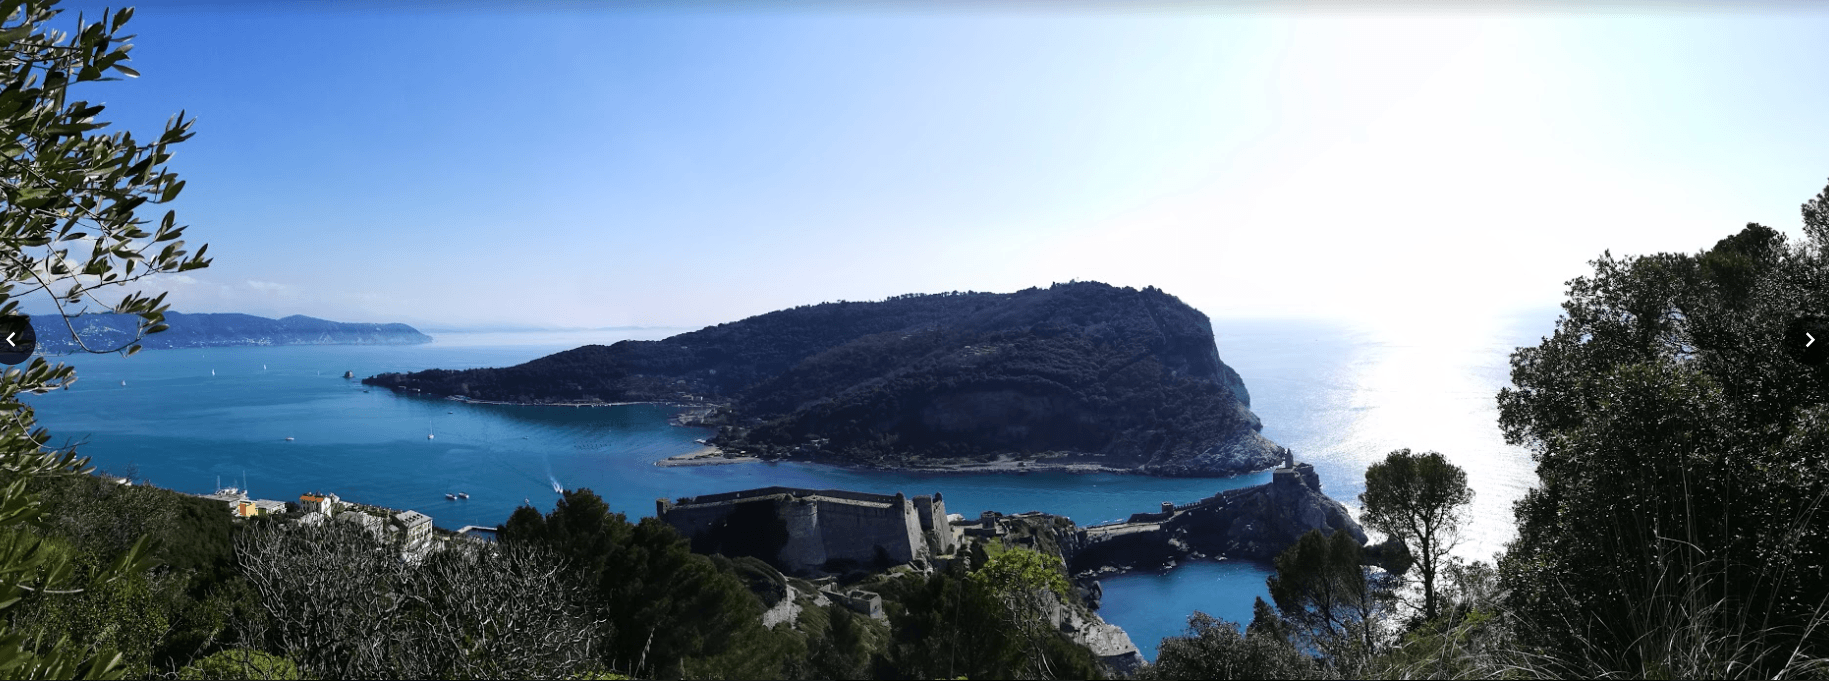 THe view of Palmaria from the Portovenere castle